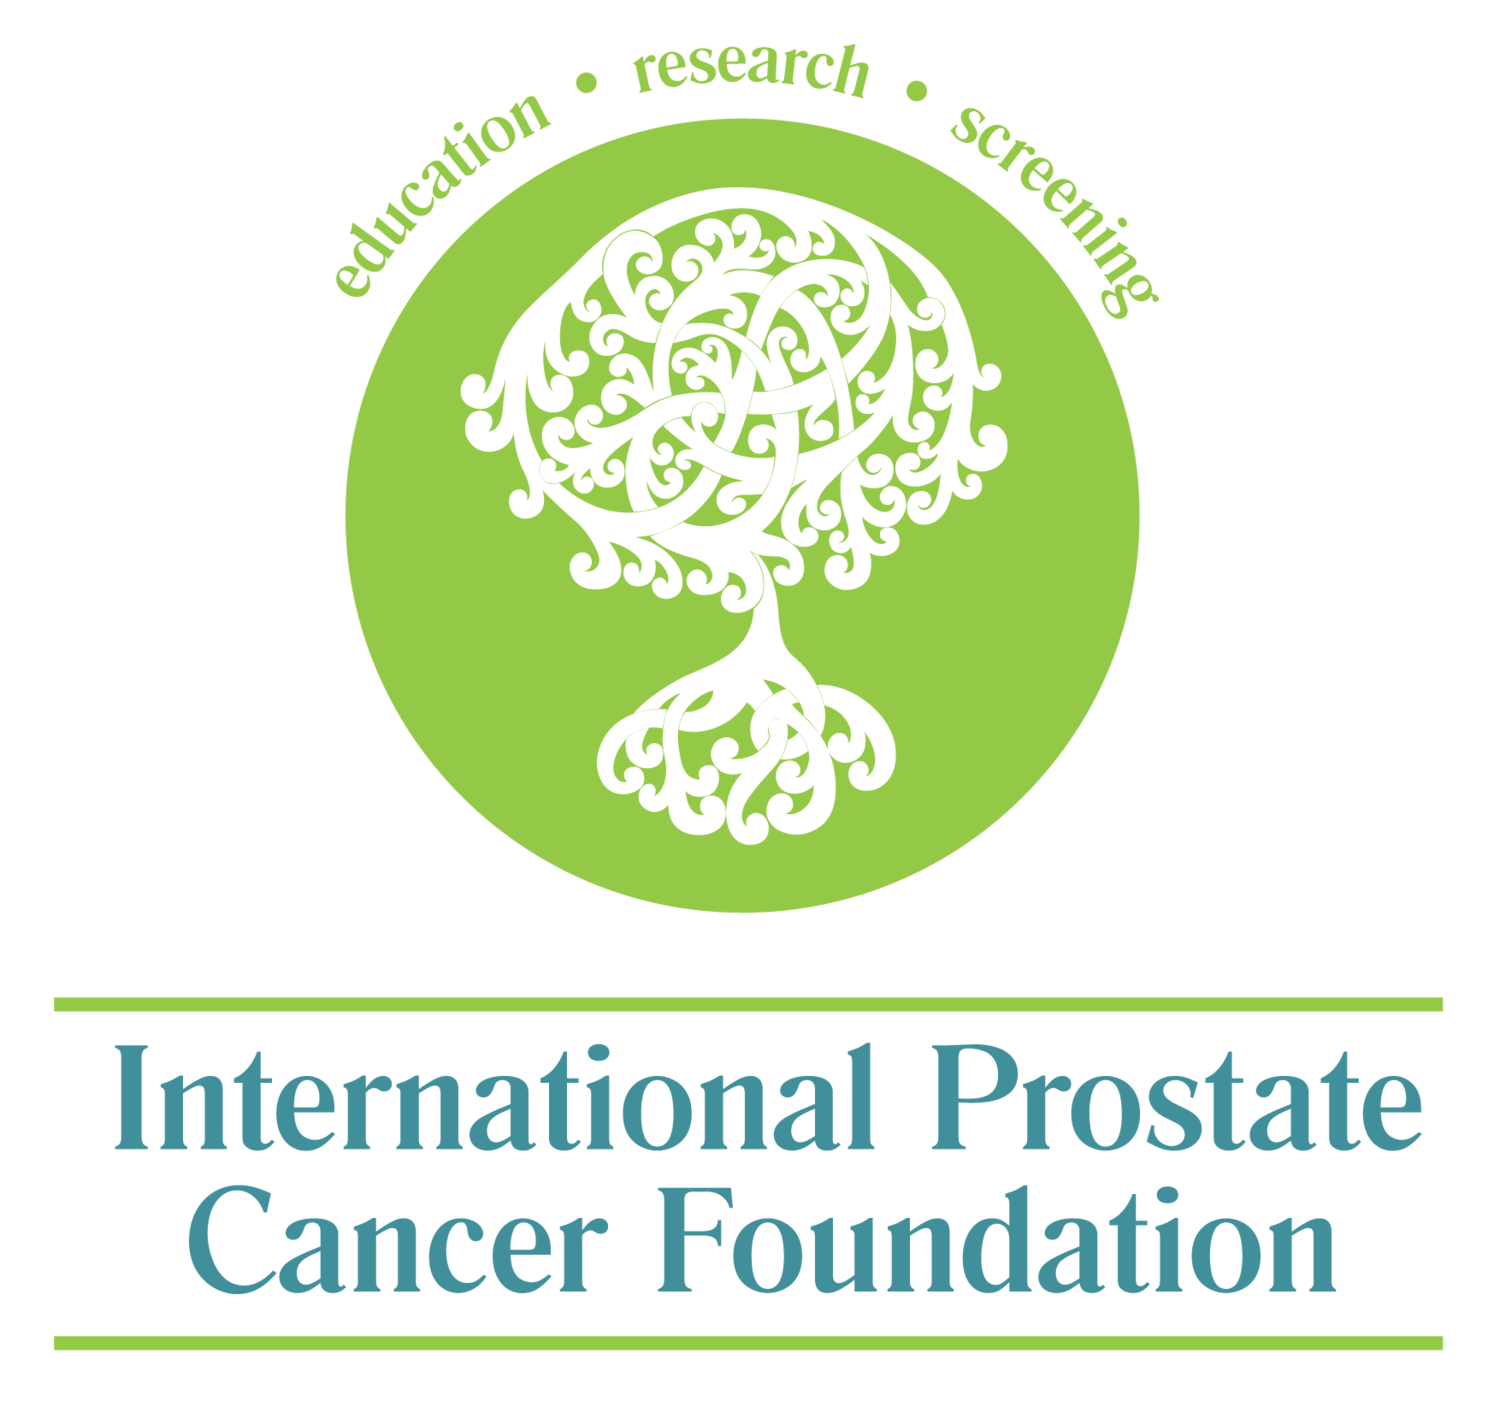 International Prostate Cancer Foundation